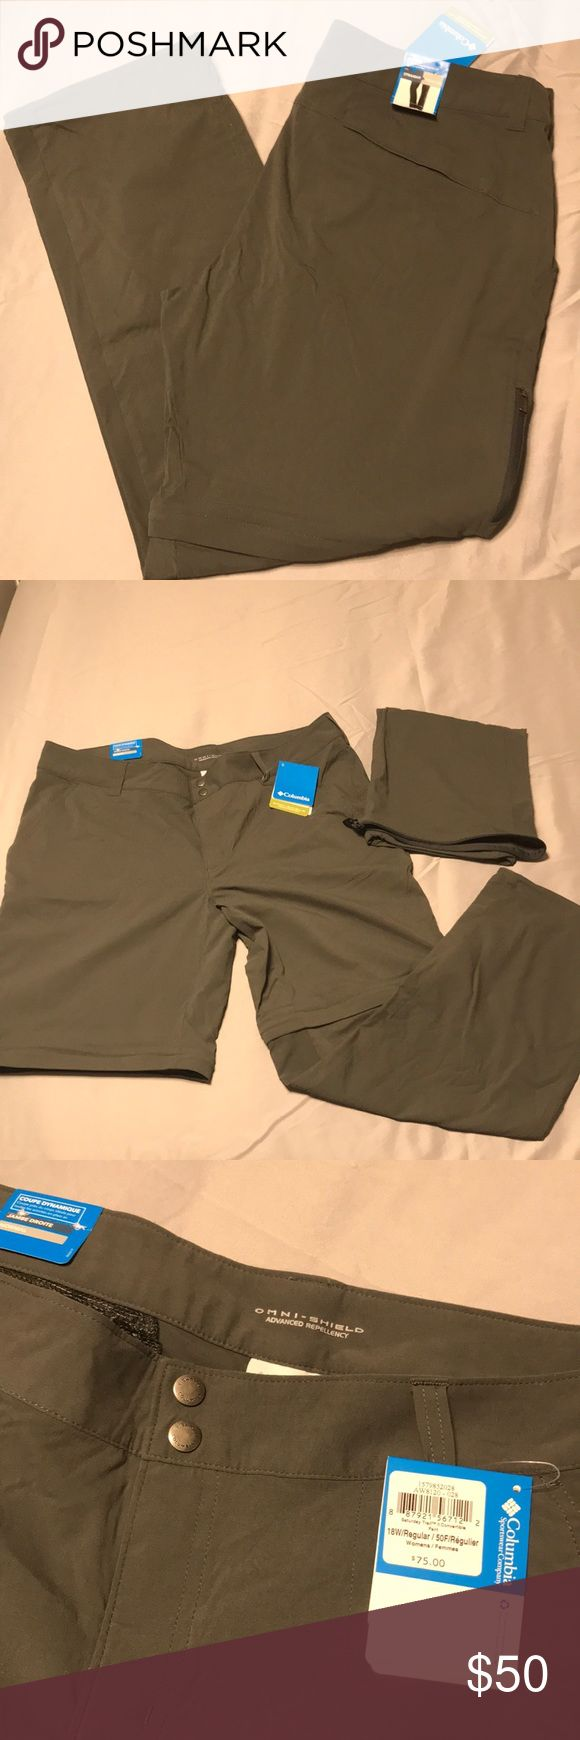 Columbia outdoor/hiking pants w/ Omni-shield Great for hiking and outdoor activities. The bottoms of these pants zip off to transform into shorts. Has Omni-shield which is a water and stain resistant barrier. Size 18w/regular Columbia Other